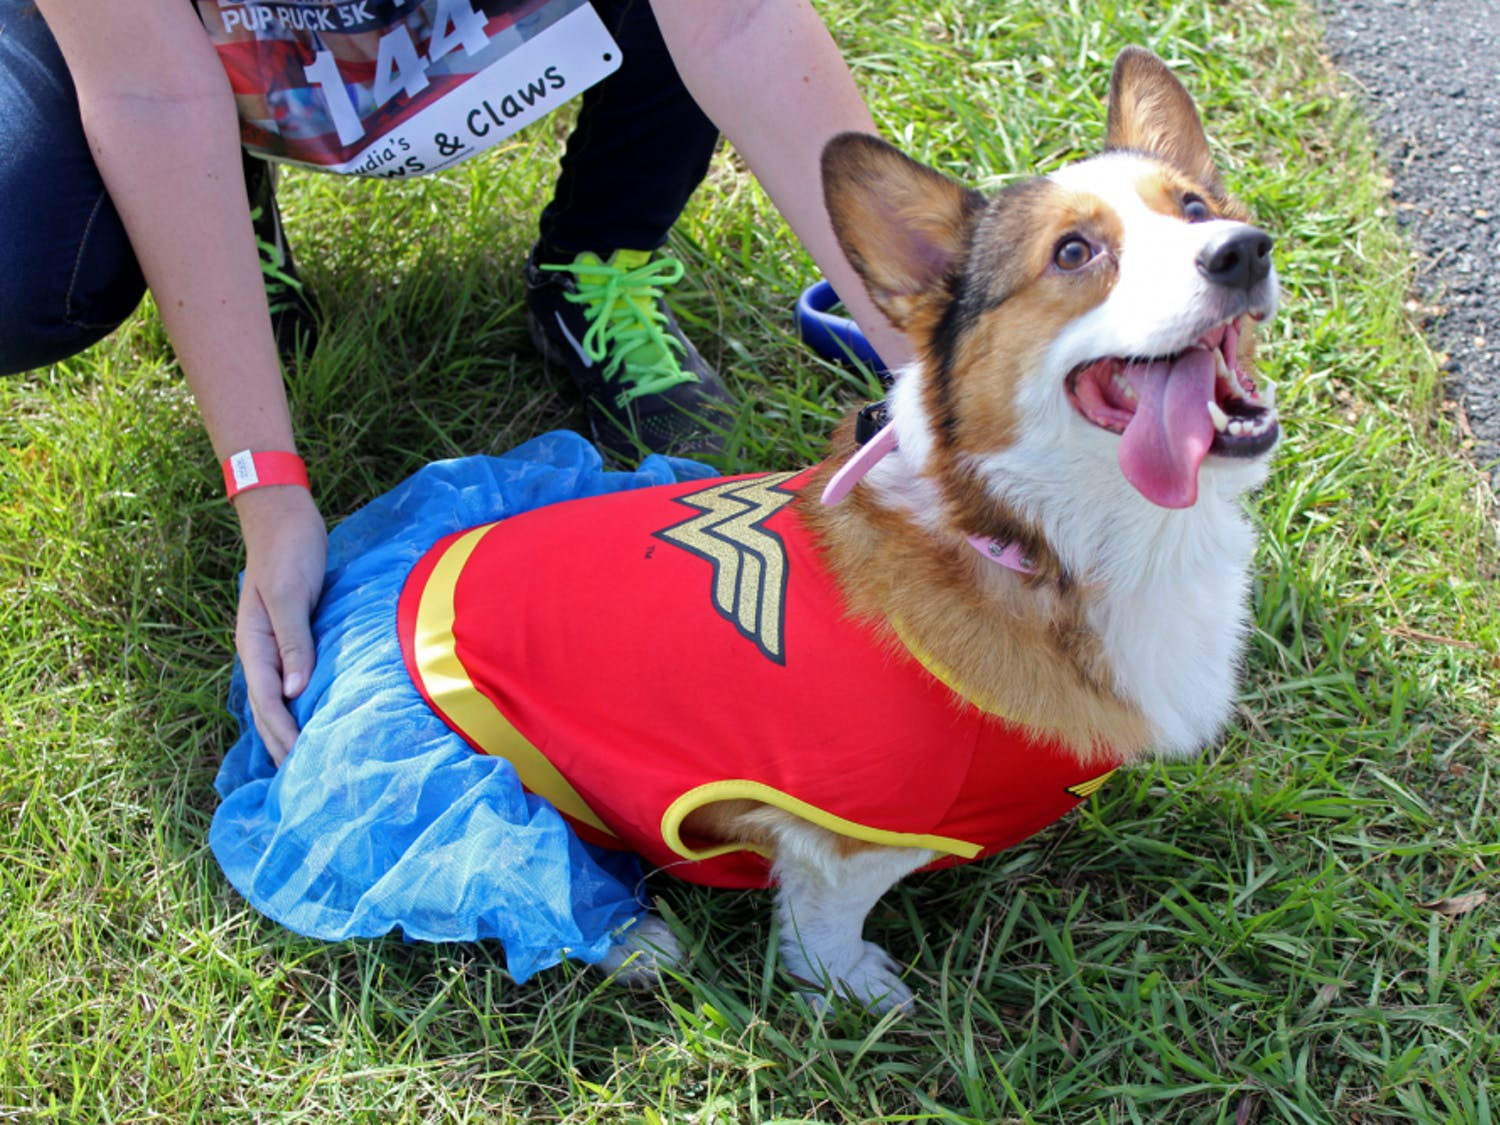 Pez, a 5-year-old Pembroke Welsh corgi, looks up at attendees of the first Pup Ruck 5k at Depot Park on Sunday. The event was held to raise money for the Pets and Patriots Foundation, which helps veterans with post-traumatic stress disorder acquire service dogs.